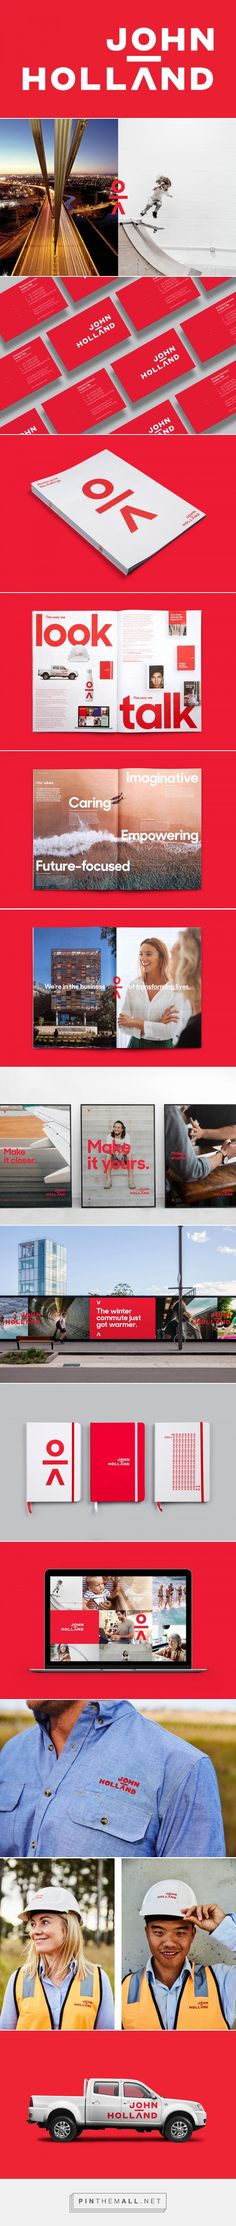 Brand New: New Logo and Identity for John Holland by Frost* Design... - a grouped images picture - Pin Them All